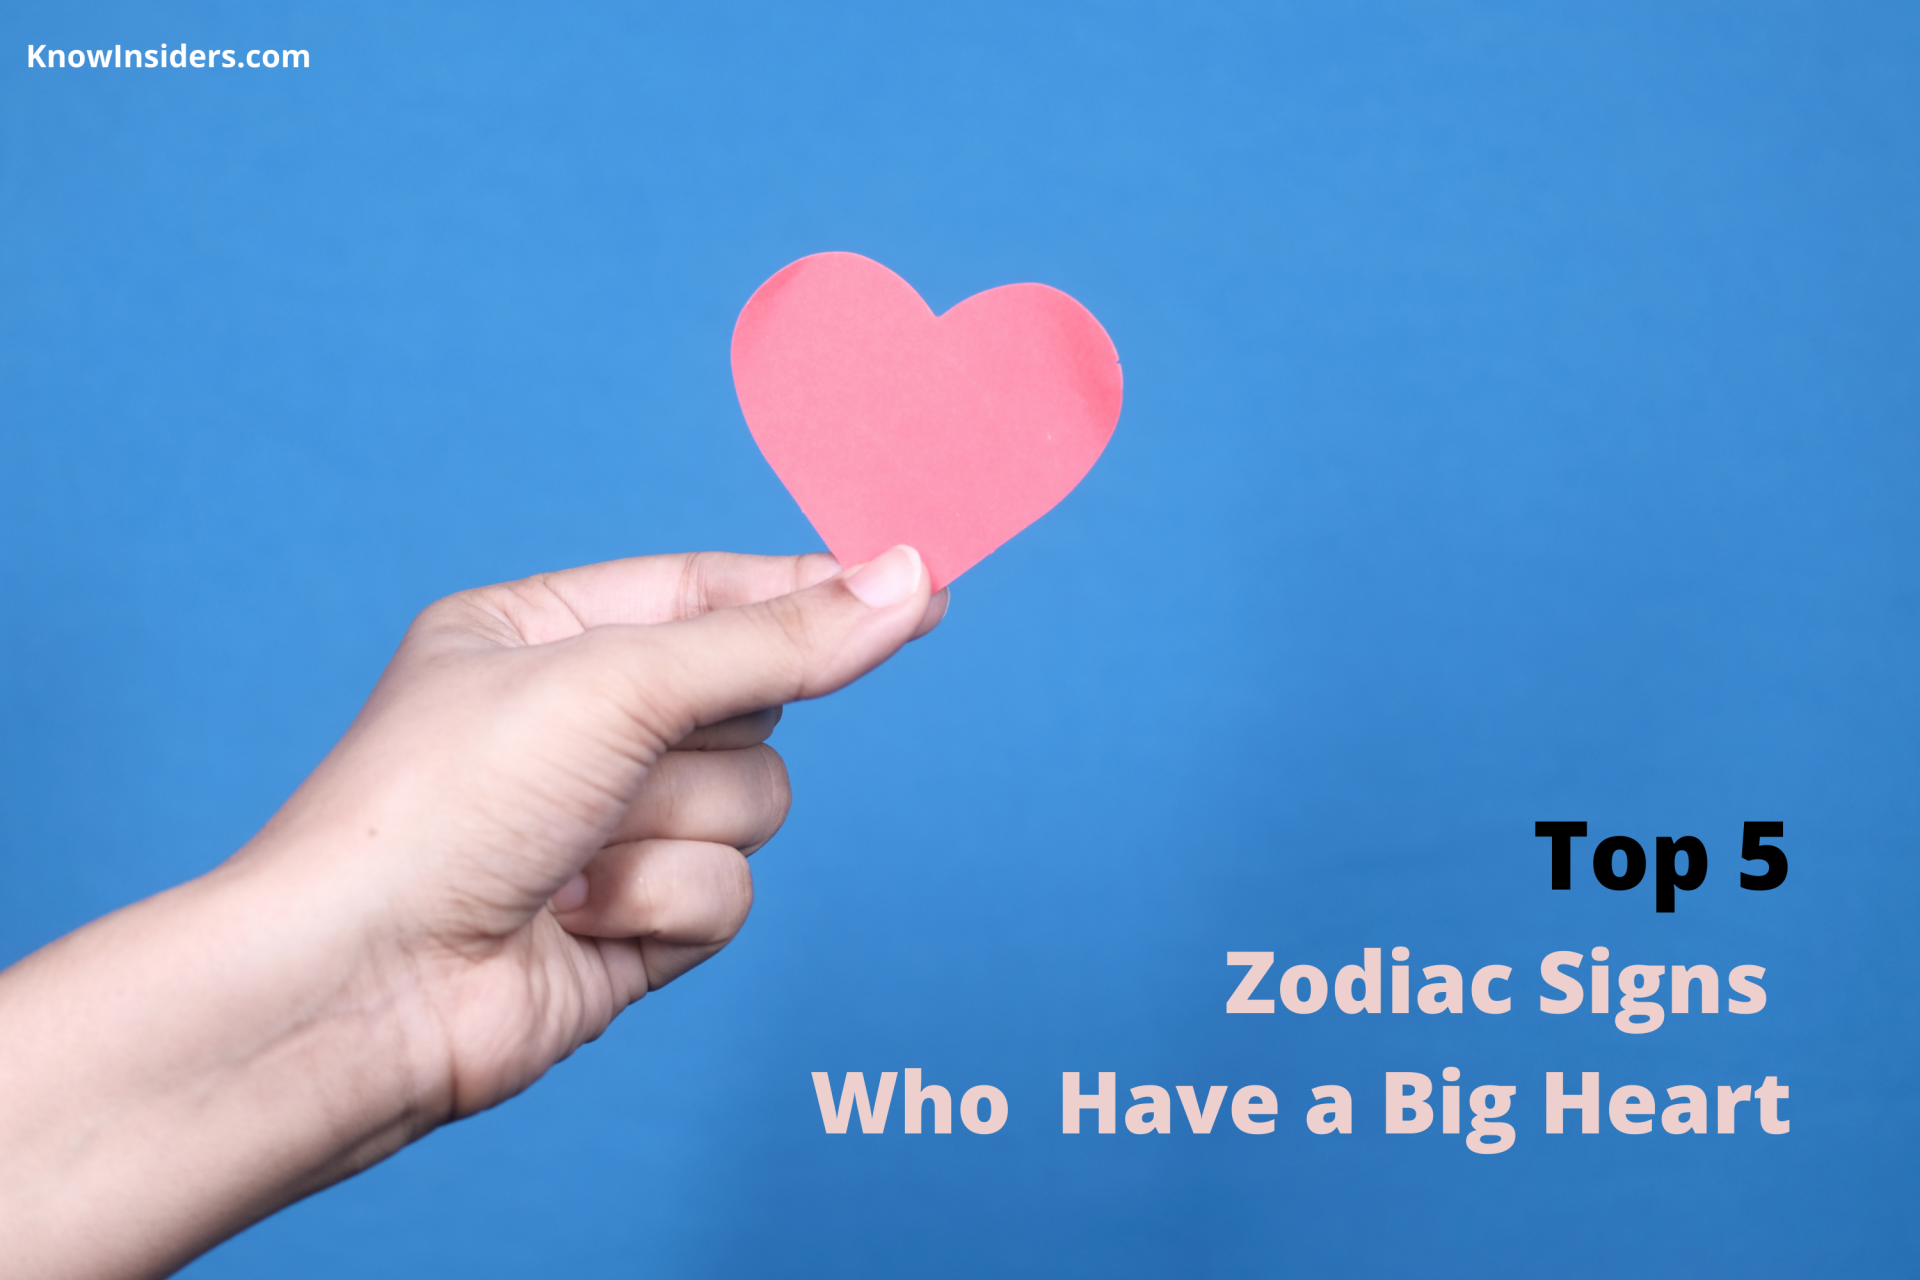 Top 5 Zodiac Signs Who Have a Big Heart